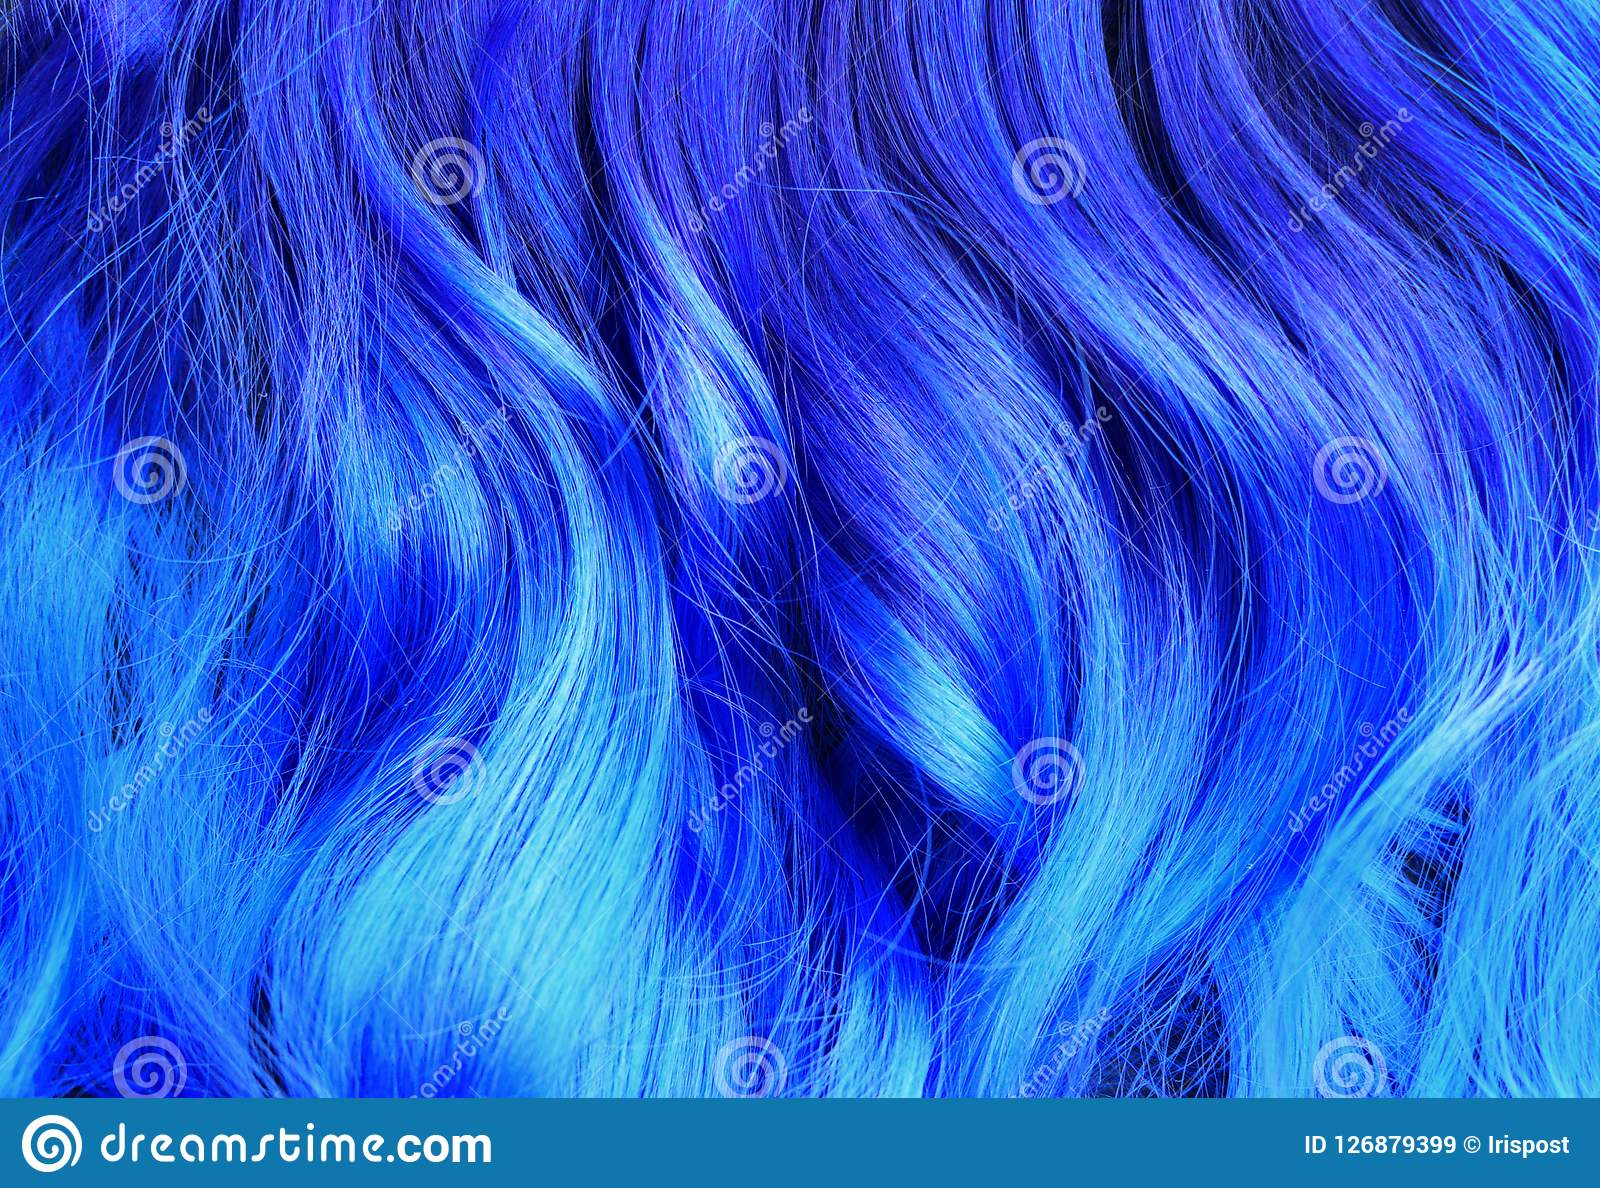 Ombre Hair Dying Black To Blue With Turquoise Highlights Brig